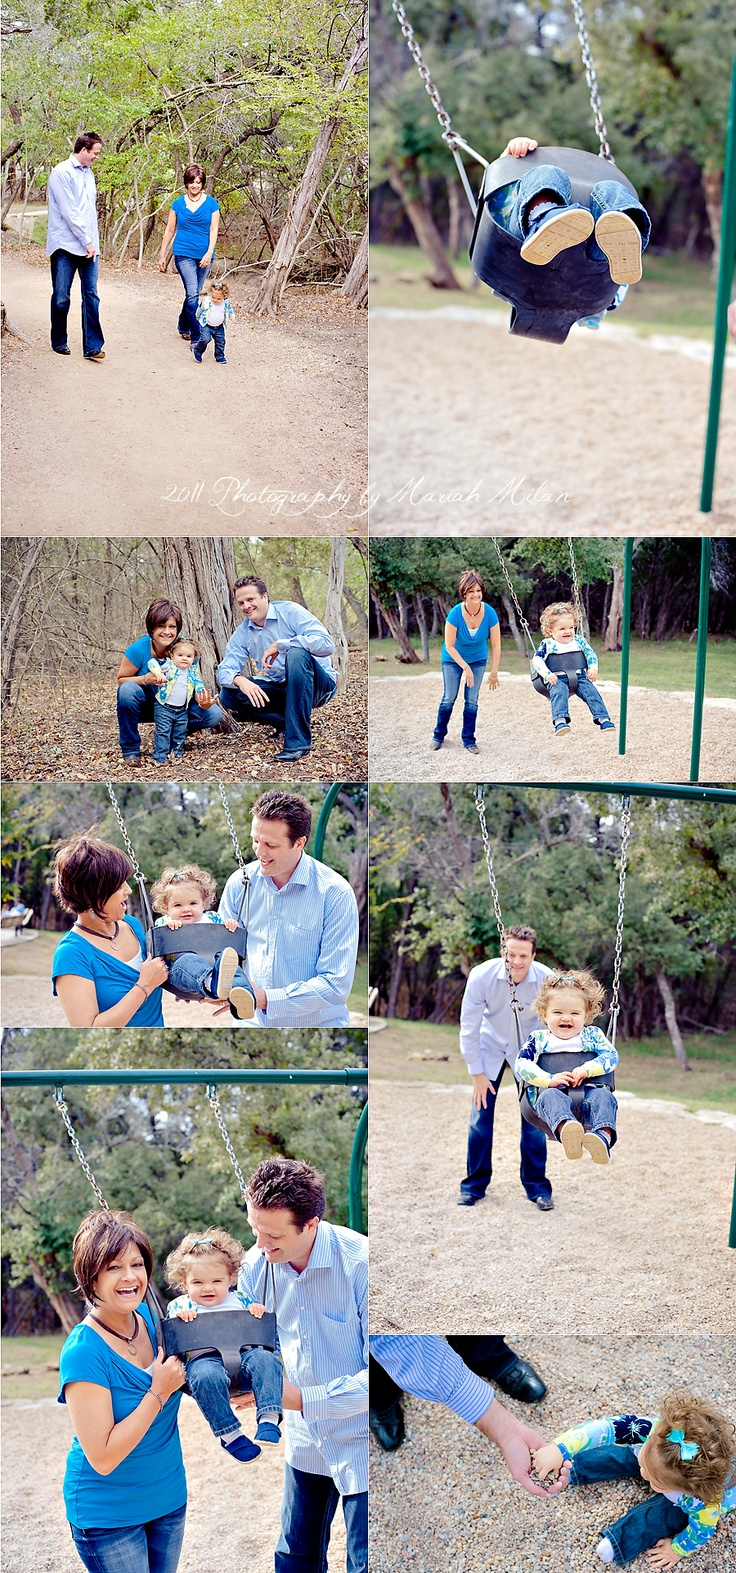 what a great idea for a family photo shoot!